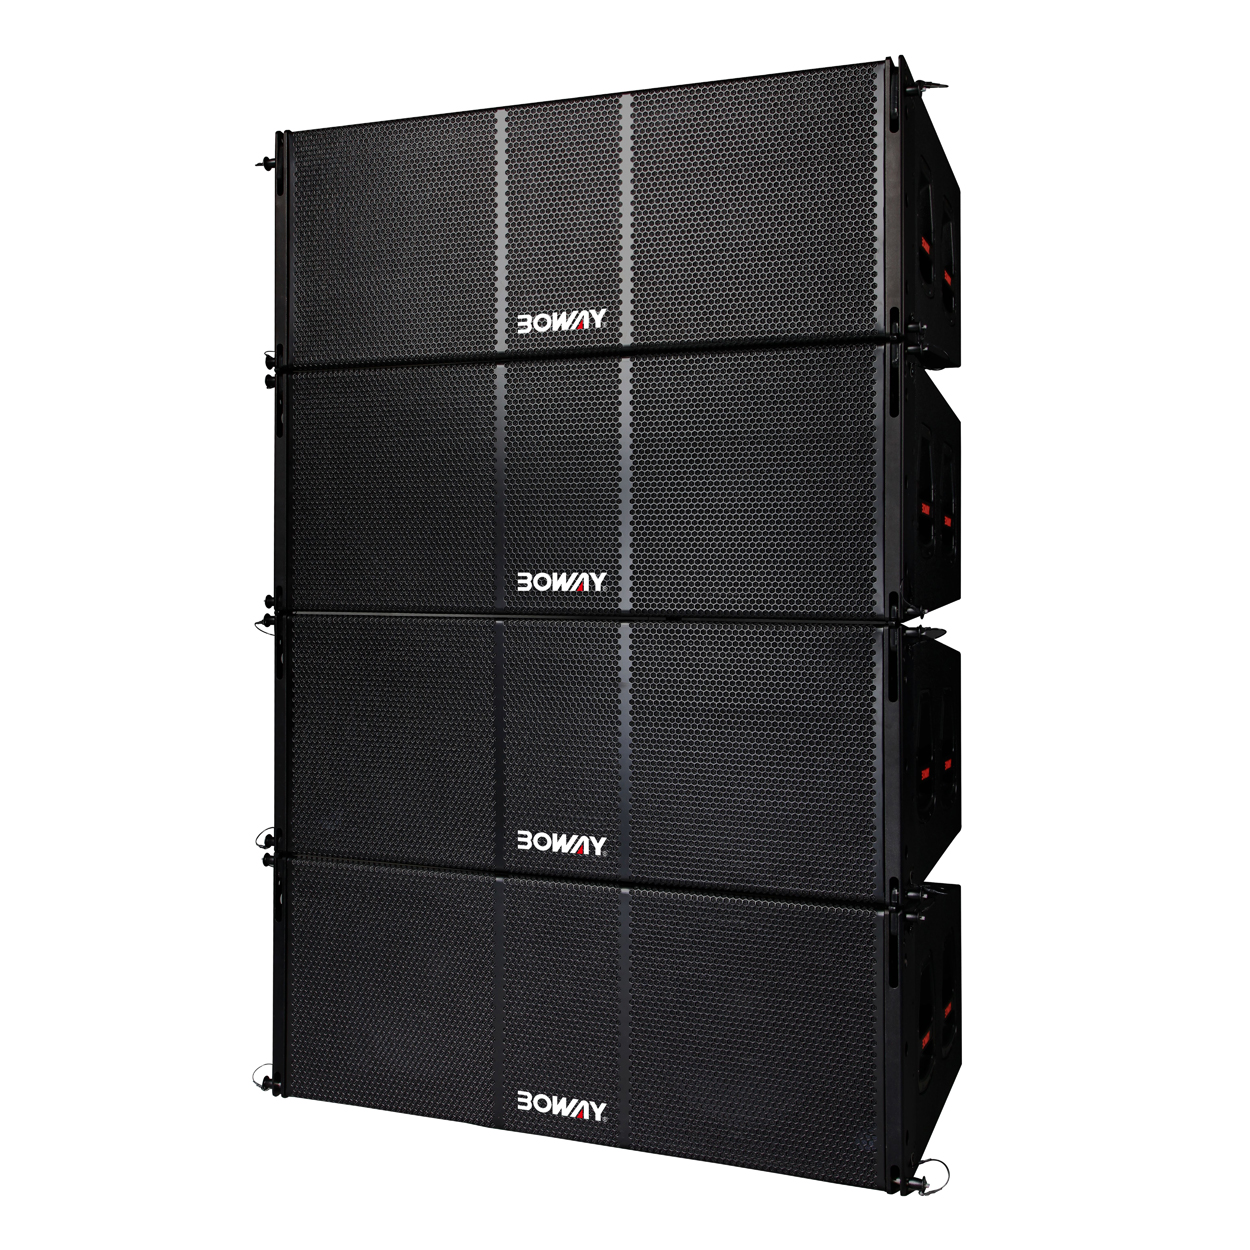 "BW-2215 Dual 15"" two way line array speaker"